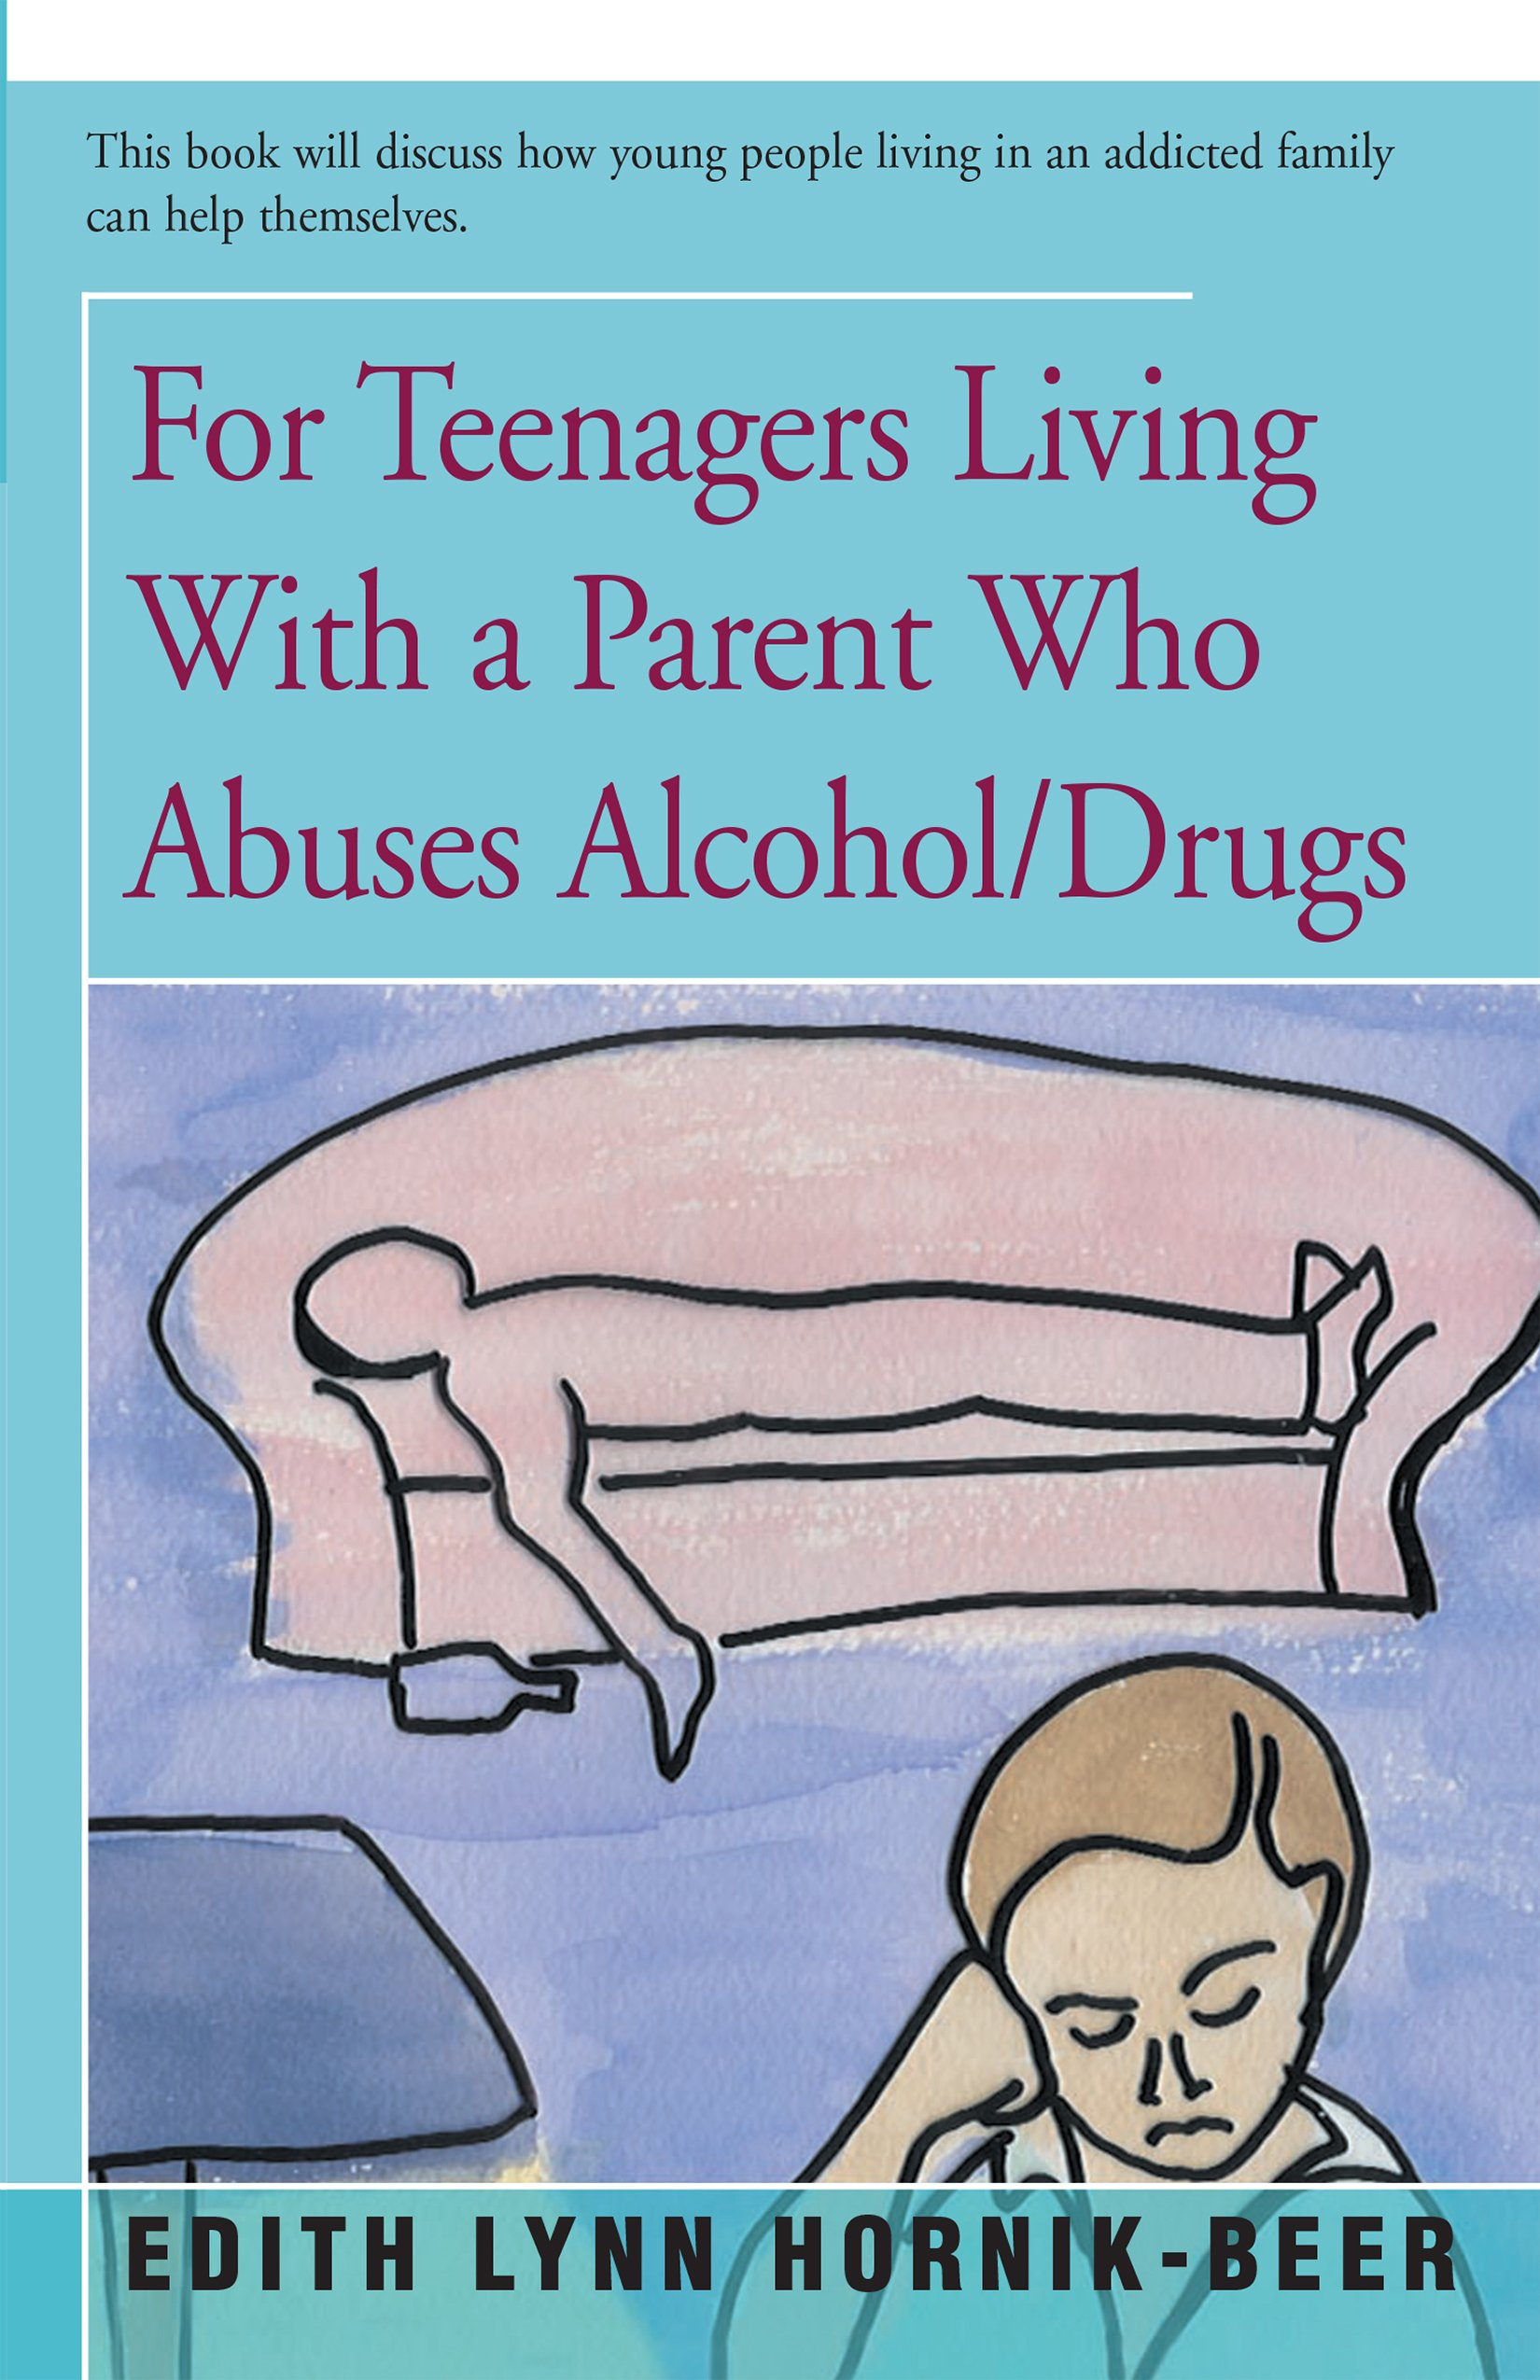 Read Online For Teenagers Living With a Parent Who Abuses Alcohol/Drugs ebook